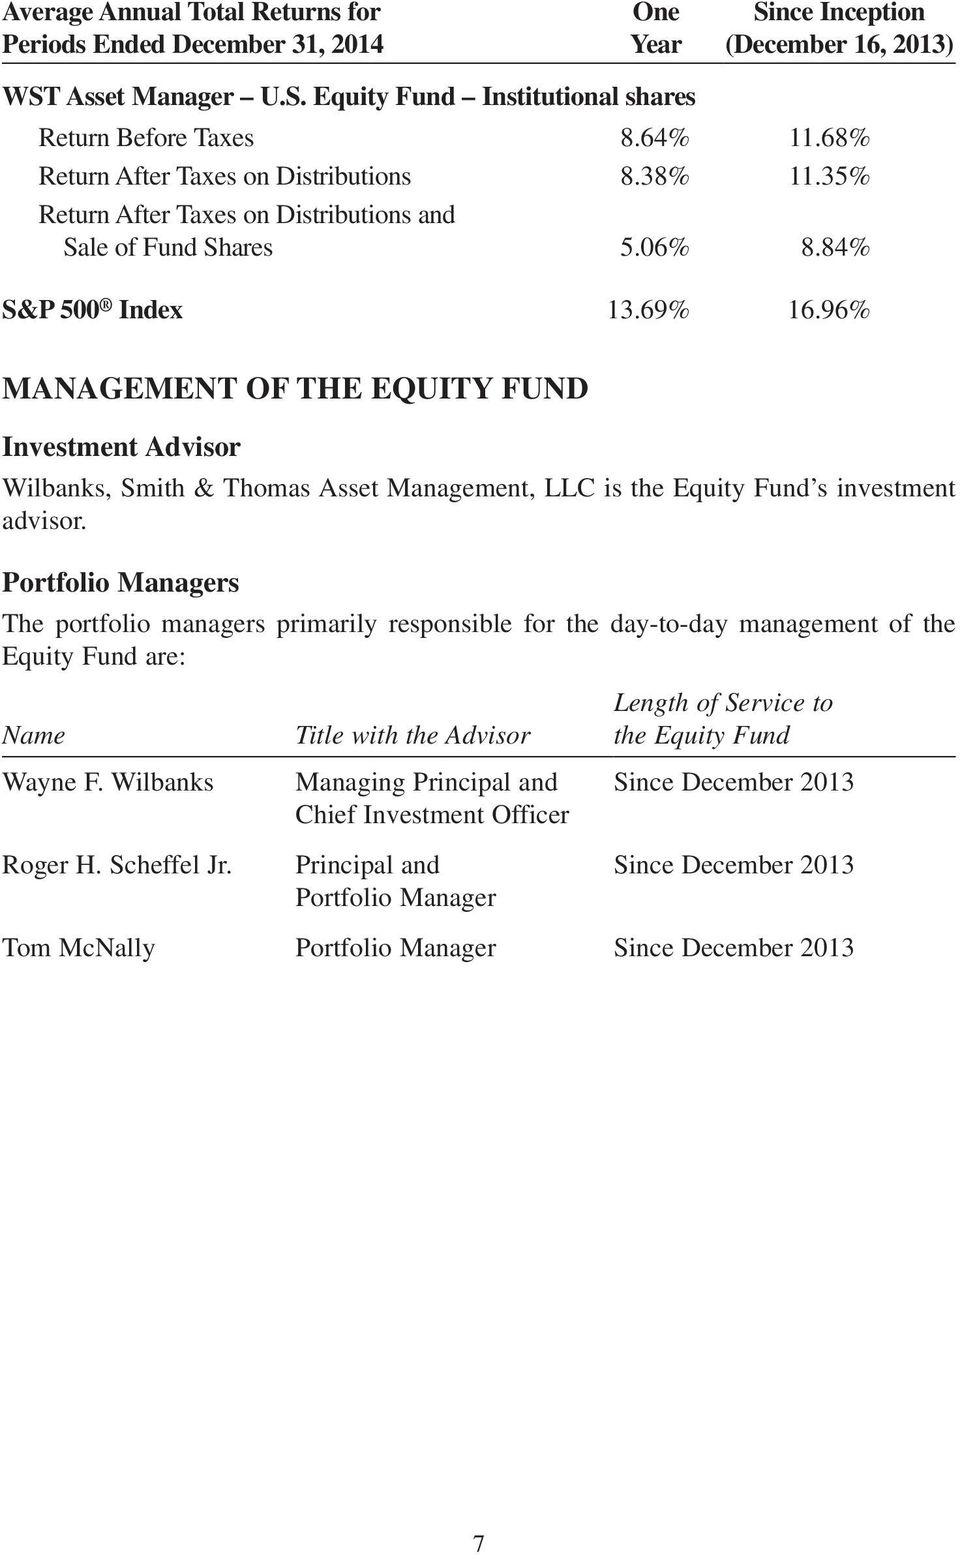 96% MANAGEMENT OF THE EQUITY FUND Investment Advisor Wilbanks, Smith & Thomas Asset Management, LLC is the Equity Fund s investment advisor.